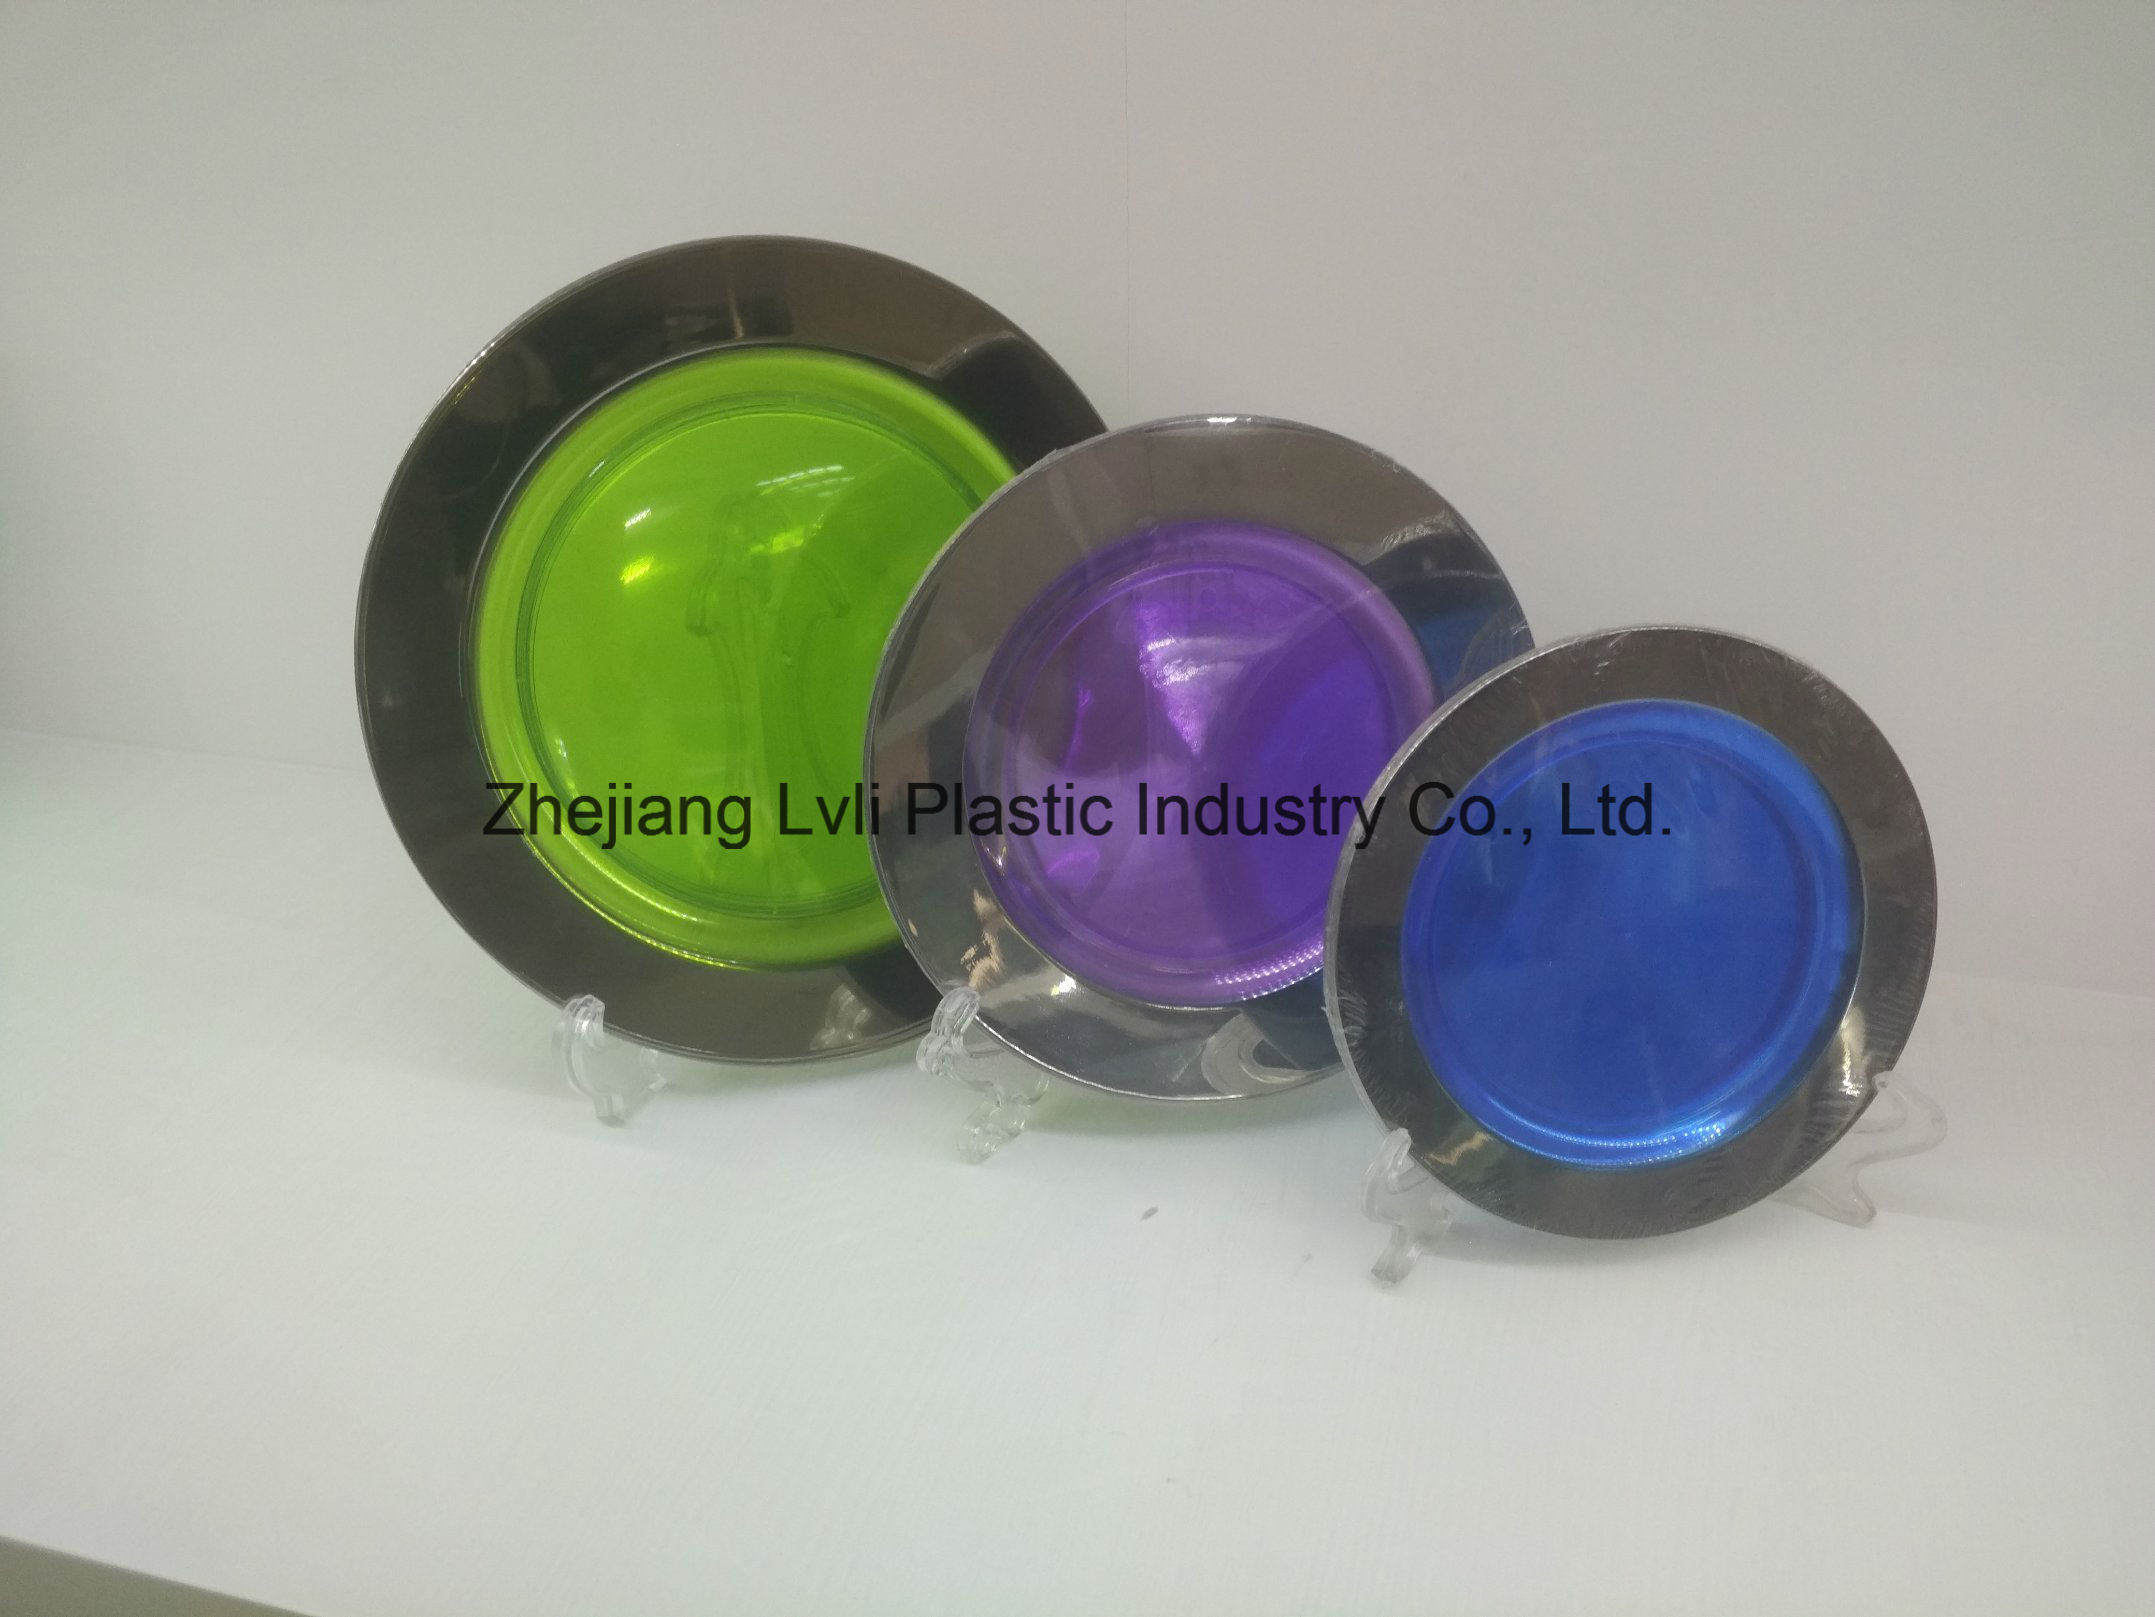 Plastic Plate, Disposable, Tableware, Tray, Dish, Colorful, PS, Transparent, Silver Rim Plate, PA-04